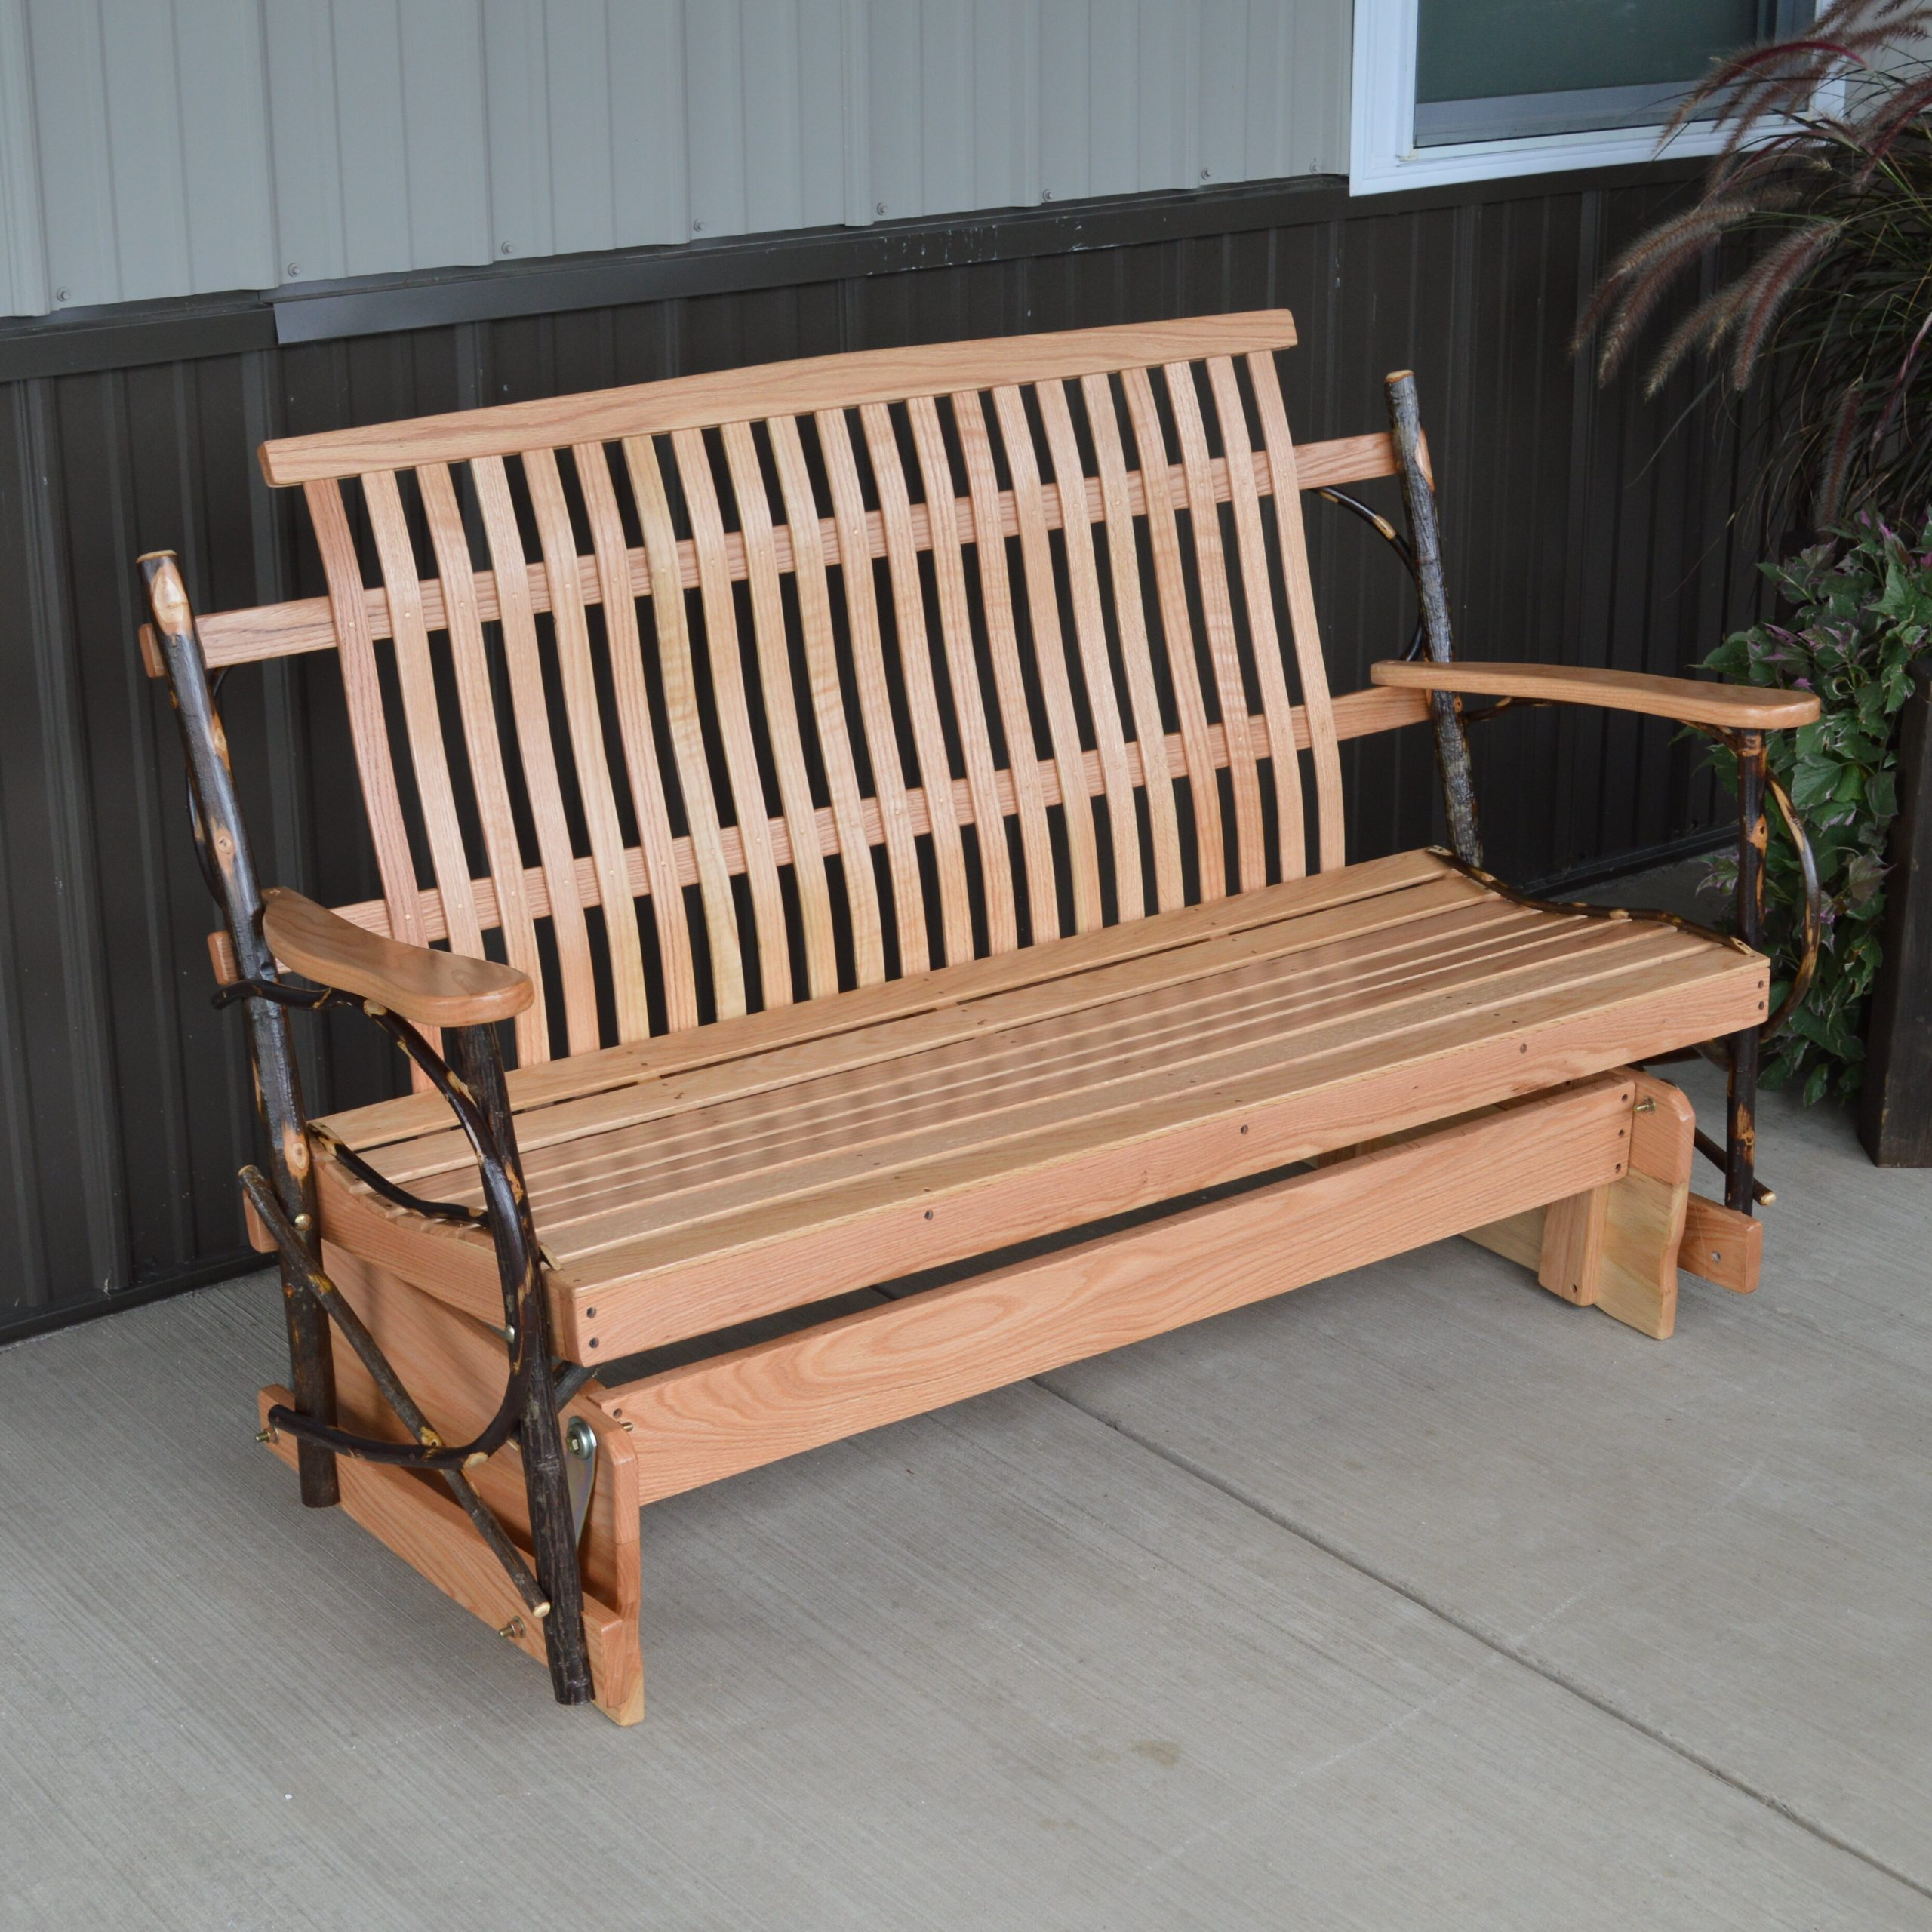 Loon Peak Valeria Hickory Porch Glider Bench | Wayfair Throughout Fanback Glider Benches (View 6 of 25)